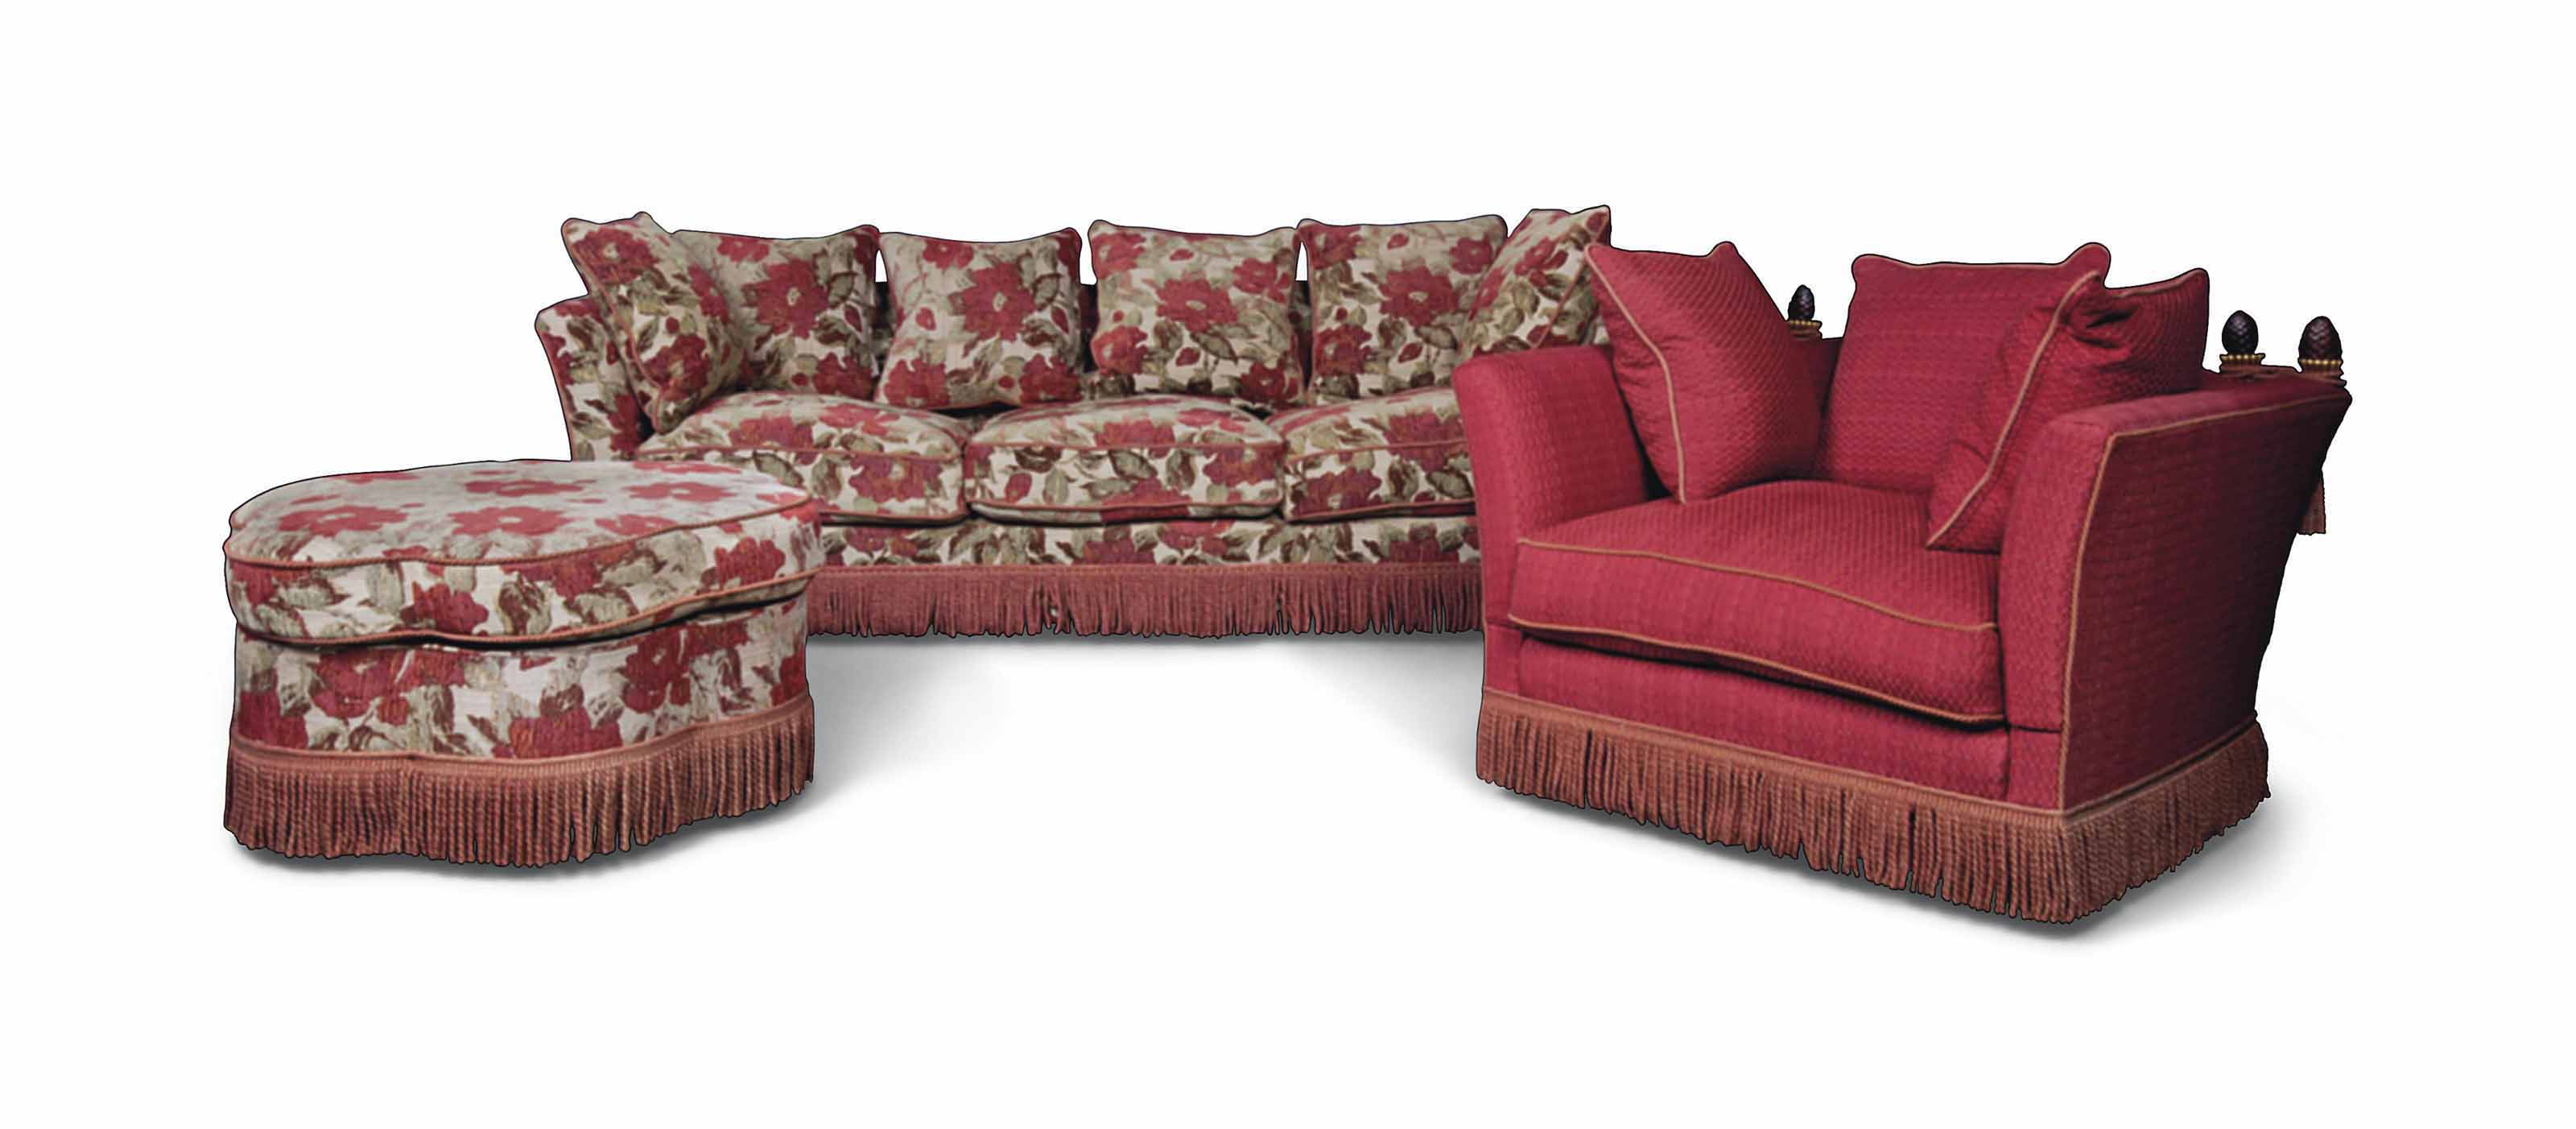 A LARGE 'KNOLE' SOFA WITH MATC